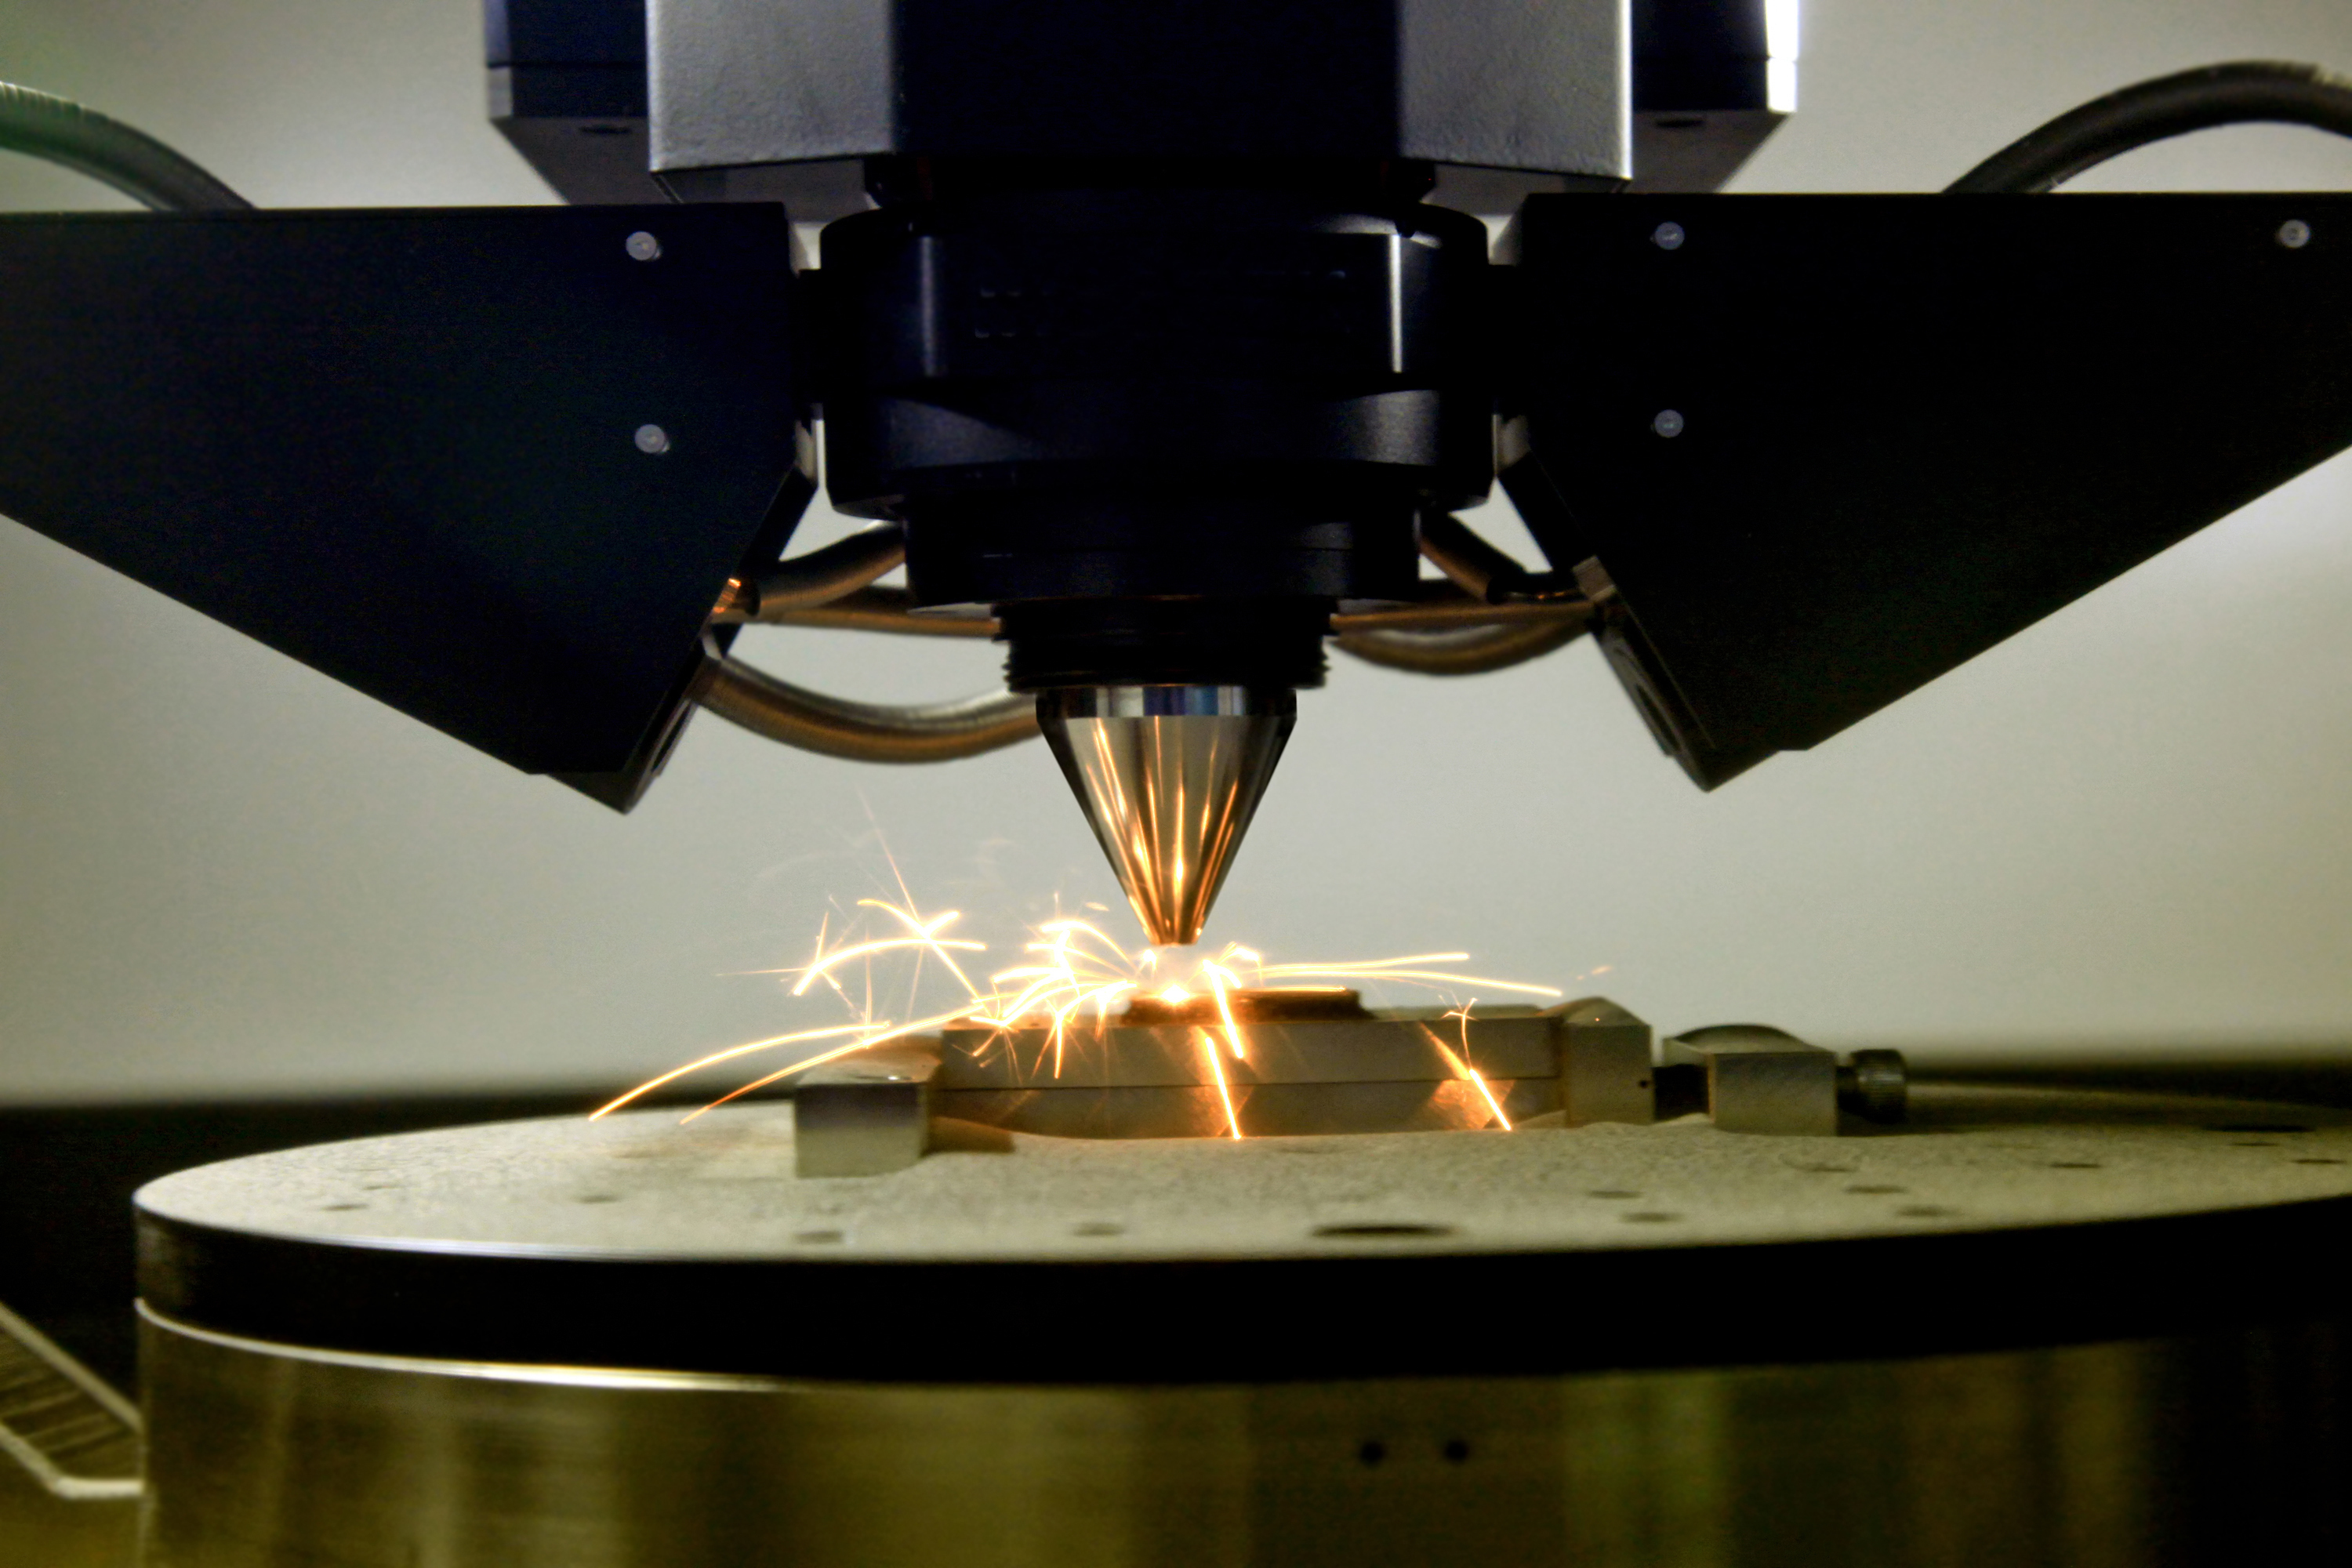 Seeking Additive Manufacturing Materials for Cold Forming Dies